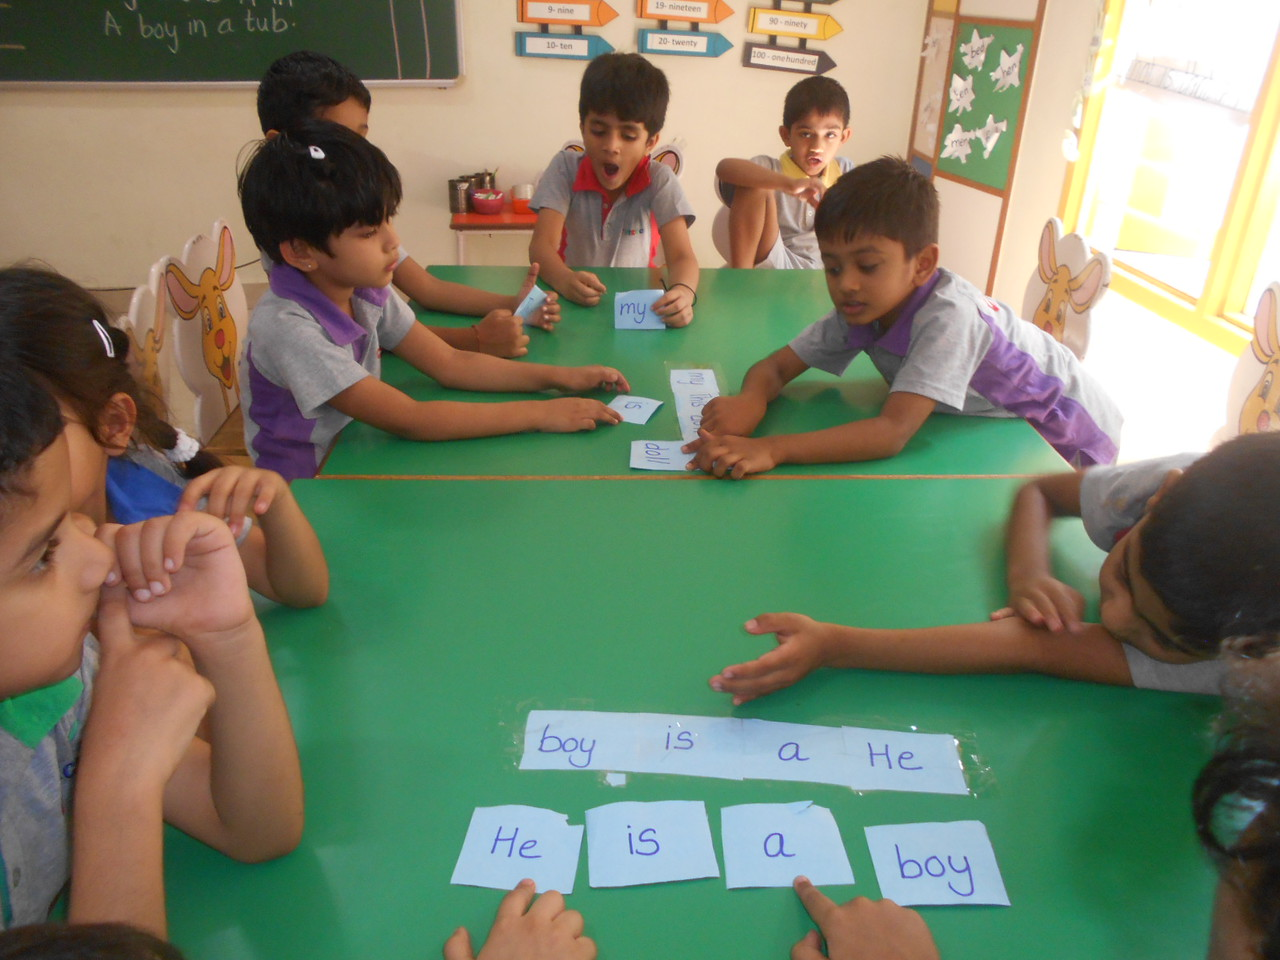 DEVELOPING LITERACY SKILLS - RE-ARRANGING WORDS TO FORM A CORRECT SENTENCE (1)